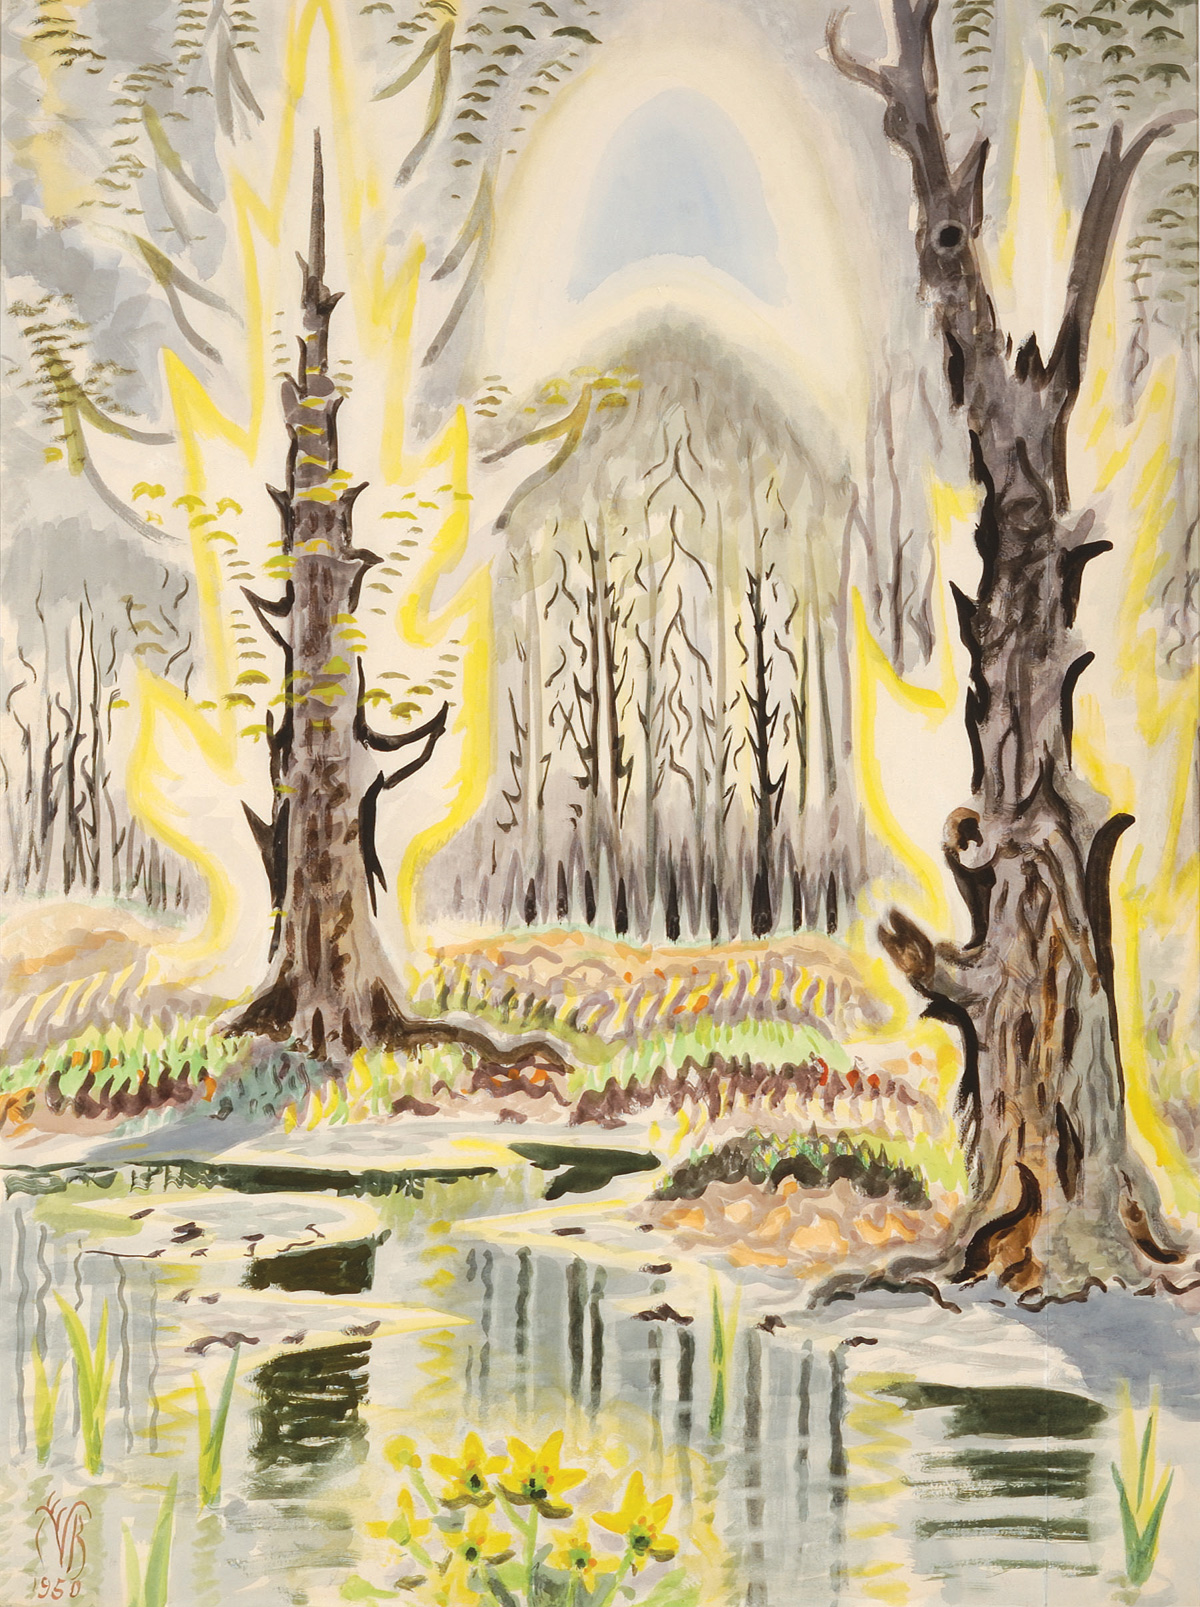 Heat Waves In A Swamp The Paintings Of Charles Burchfield